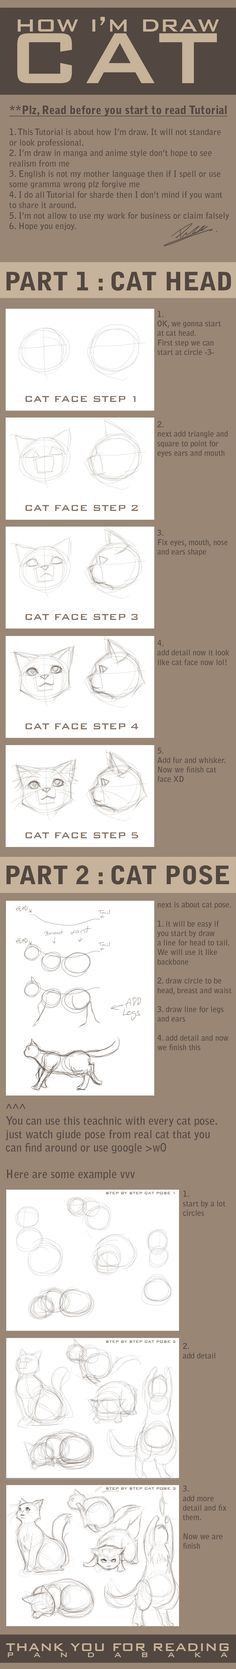 animal Cat drawing tutorial how I draw cat by pandabaka on deviantART - these things help for a lot of things, take note and just leave it till you need it! Drawing Lessons, Drawing Techniques, Drawing Tips, Drawing Reference, Drawing Sketches, Art Lessons, Sketching, Drawing Ideas, Cat Drawing